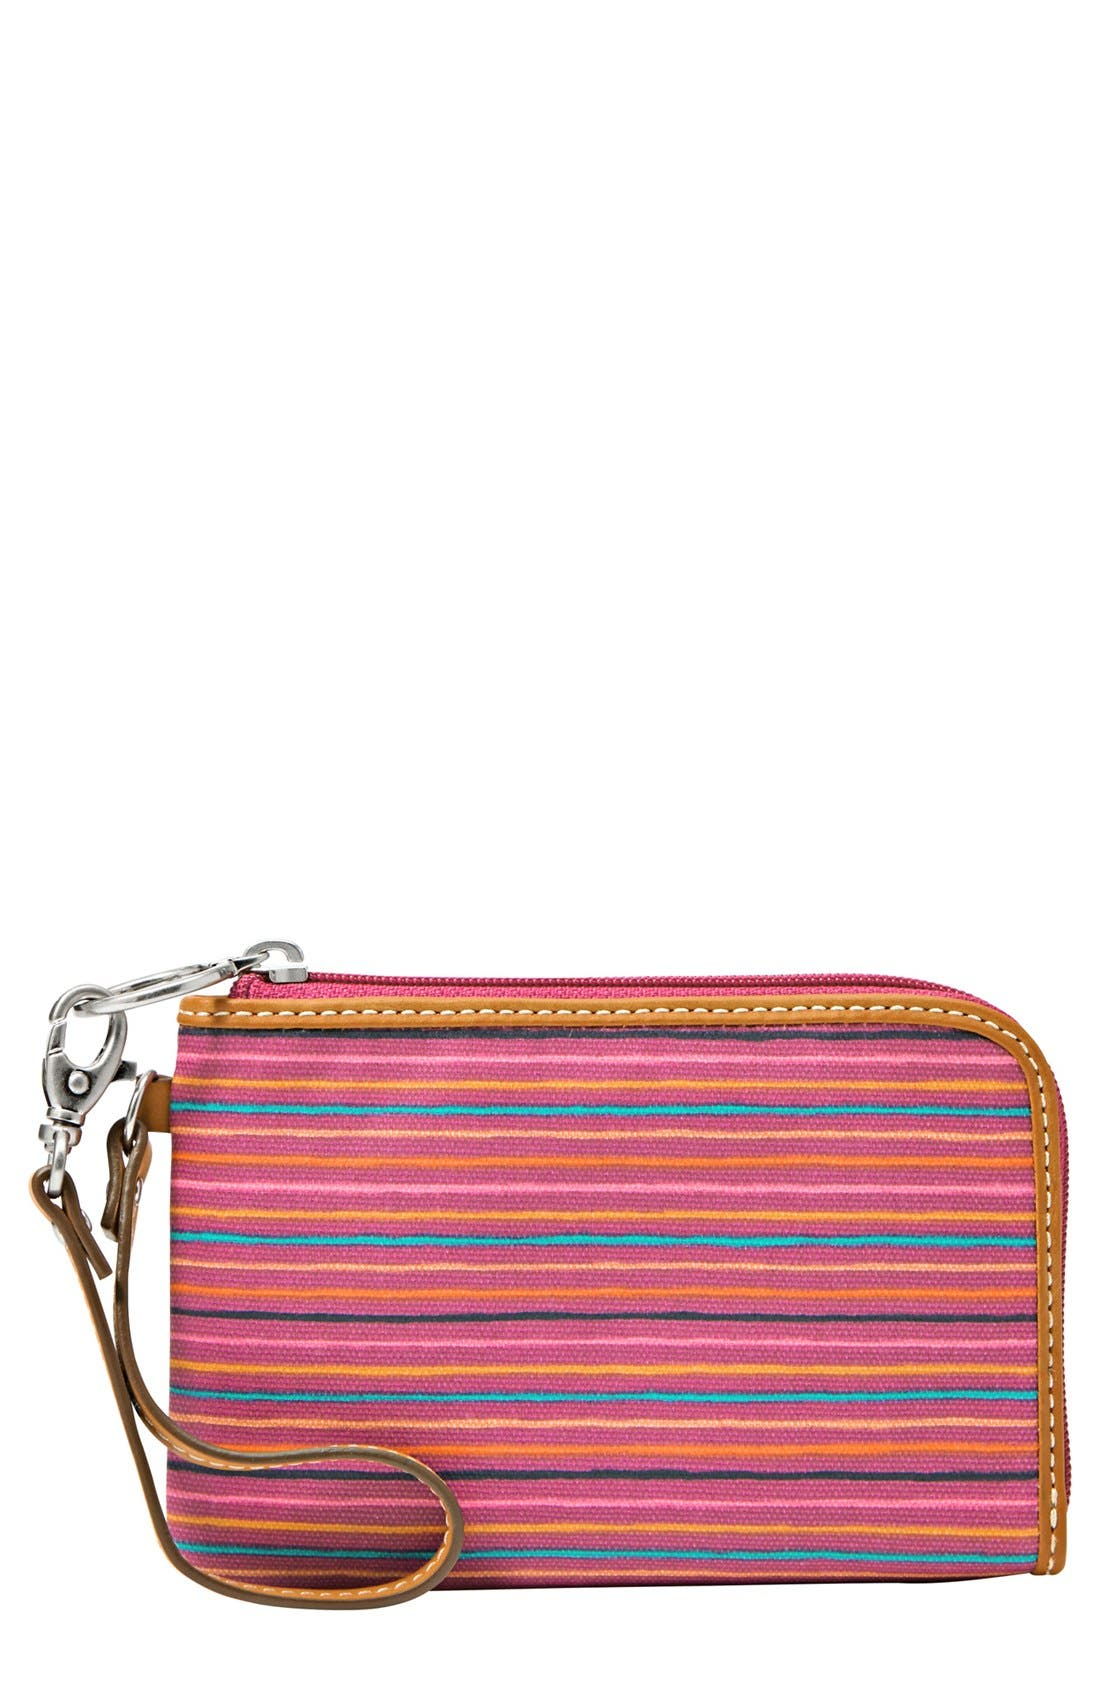 Alternate Image 1 Selected - Fossil 'Key-Per' Coated Canvas Wristlet